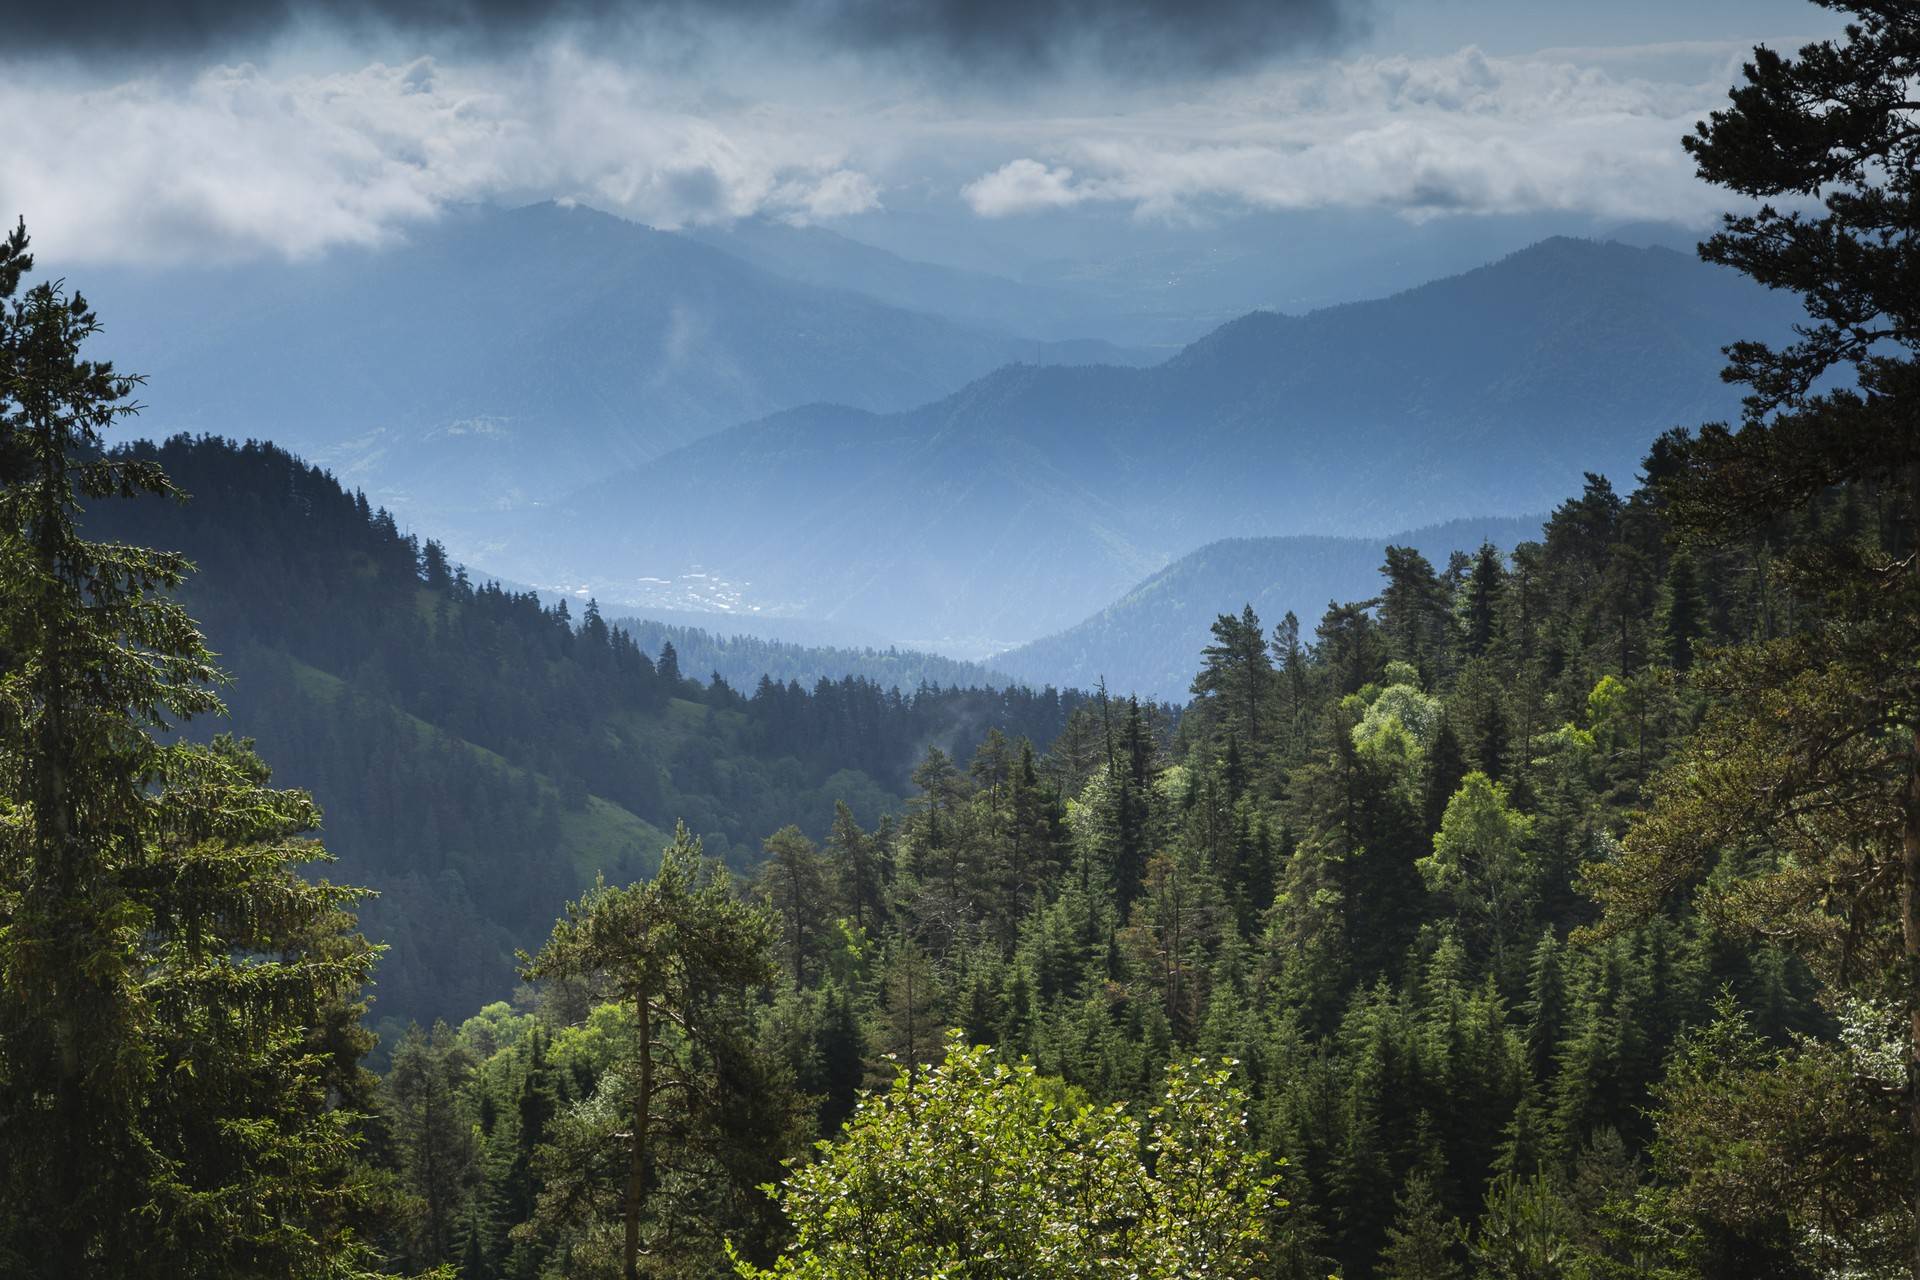 The spectacular mountain vistas of Borjomi-Kharagauli National Park